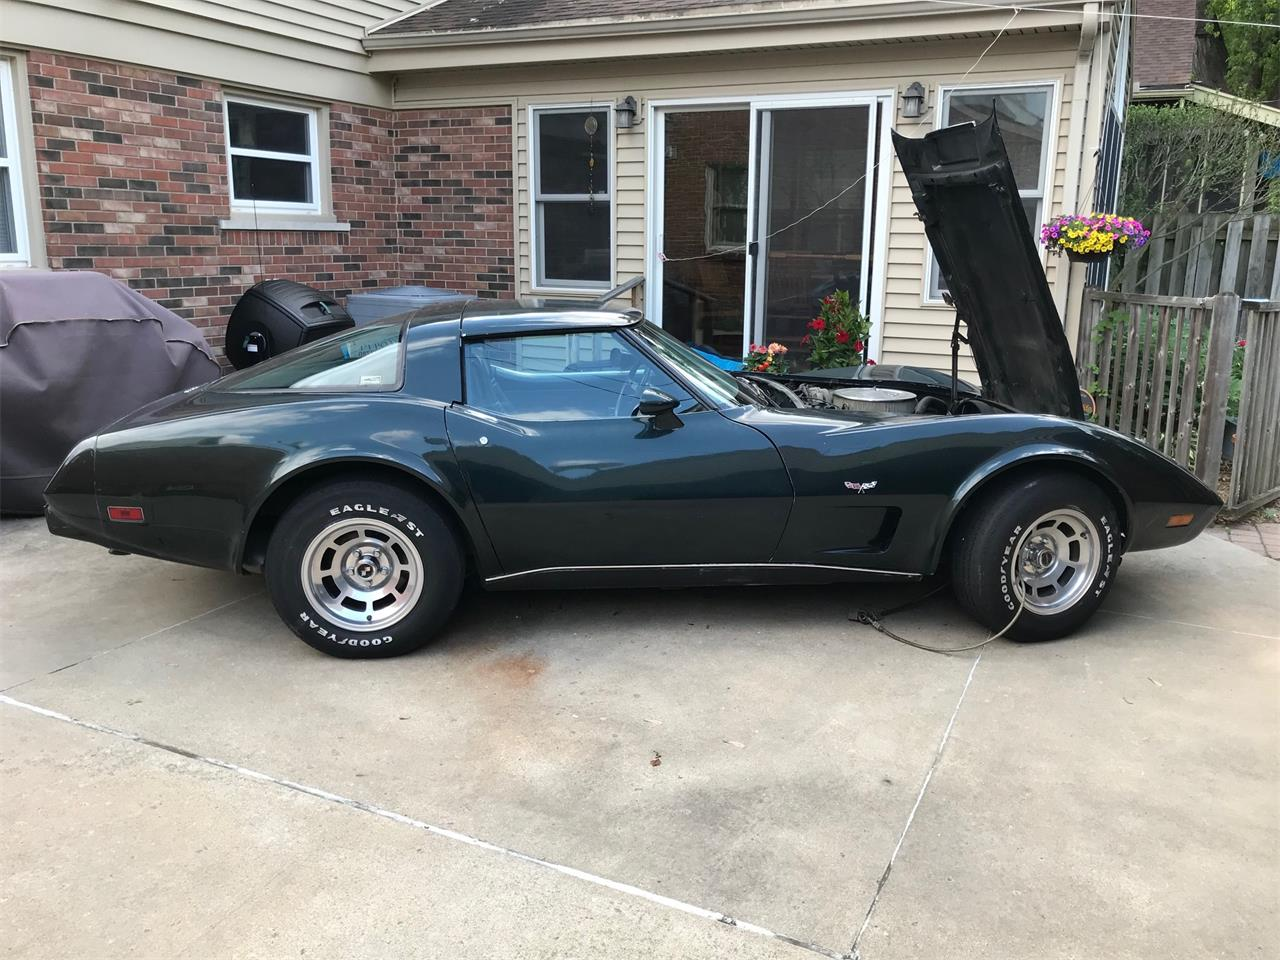 Large Picture of 1979 Chevrolet Corvette located in Troy Michigan Offered by a Private Seller - QCU7